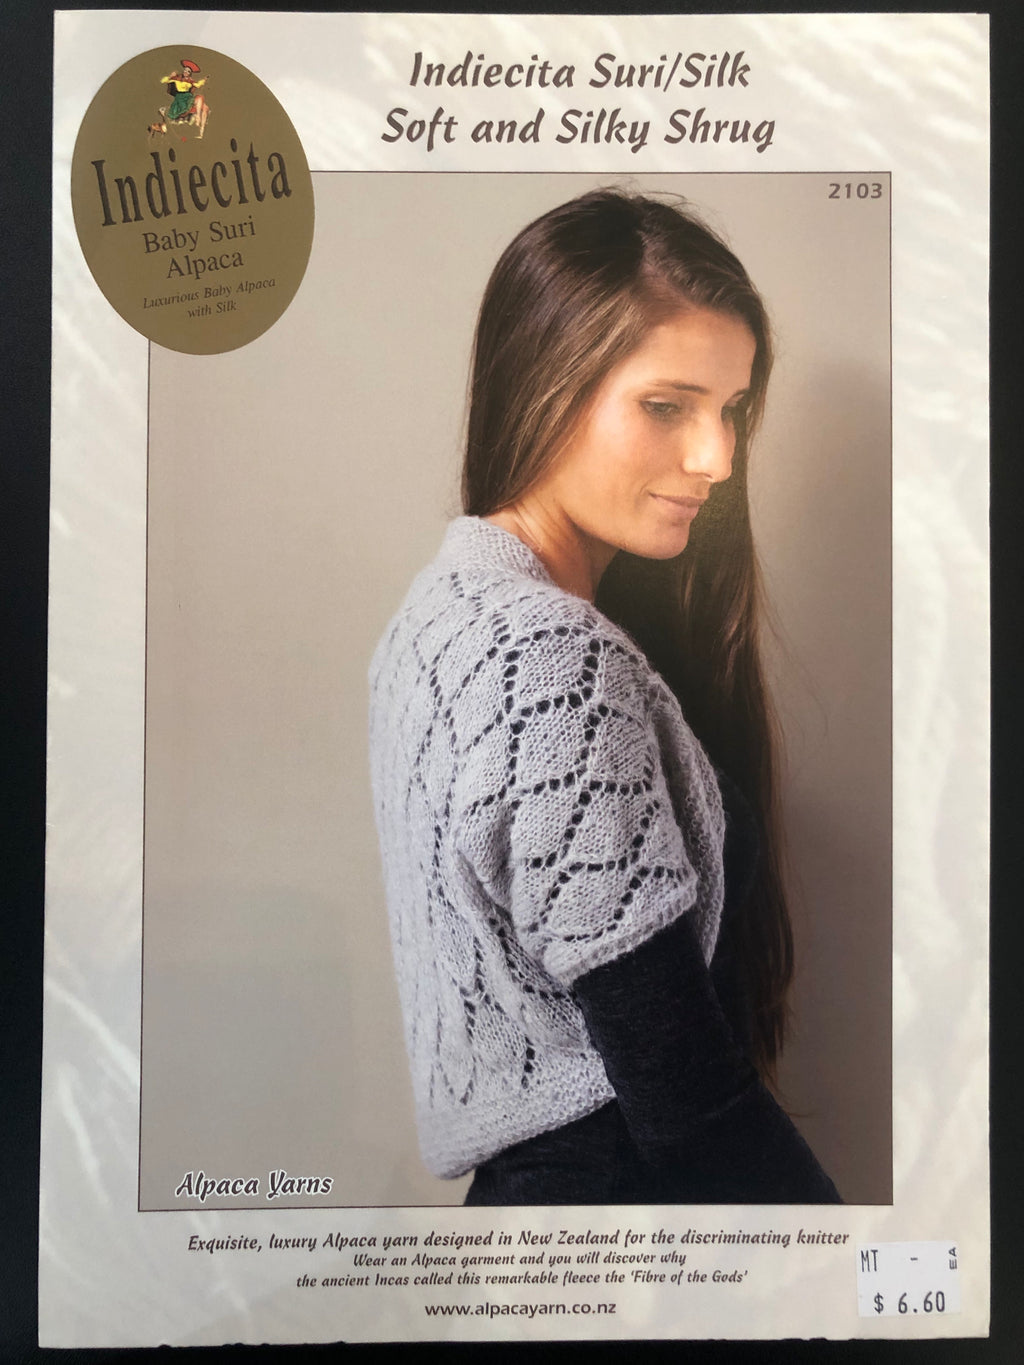 Soft and Silky Shrug in Indiecita Baby Suri Alpaca-Pattern-2103 - The Mulberry Tree at Milton